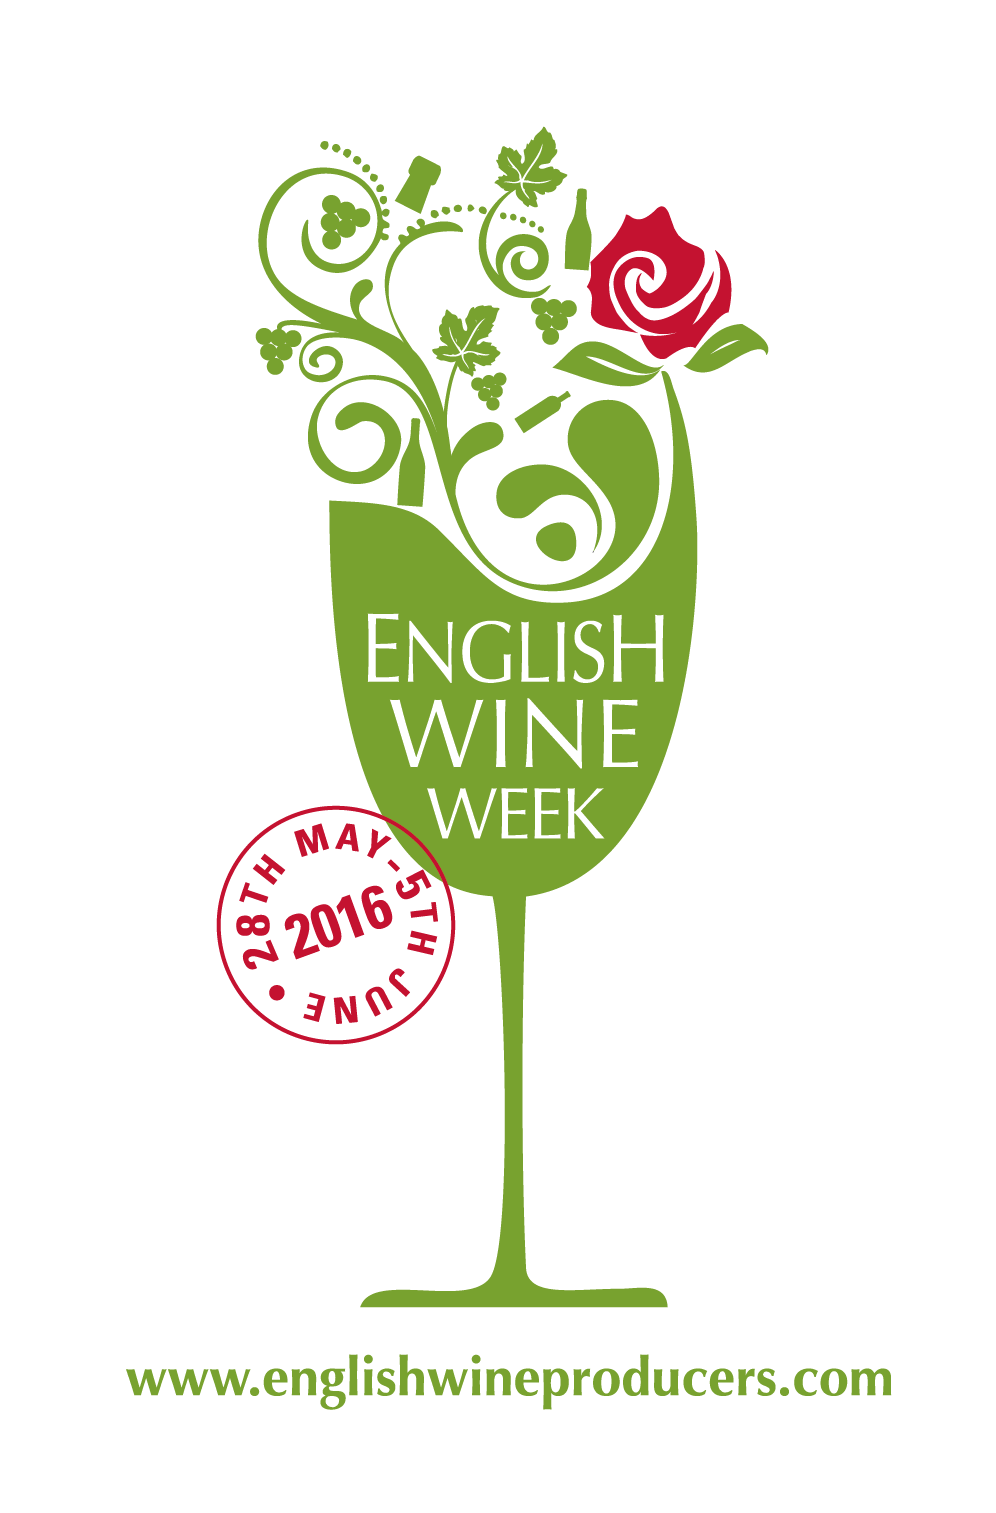 English Wine Week 28 May - 5 June 2016